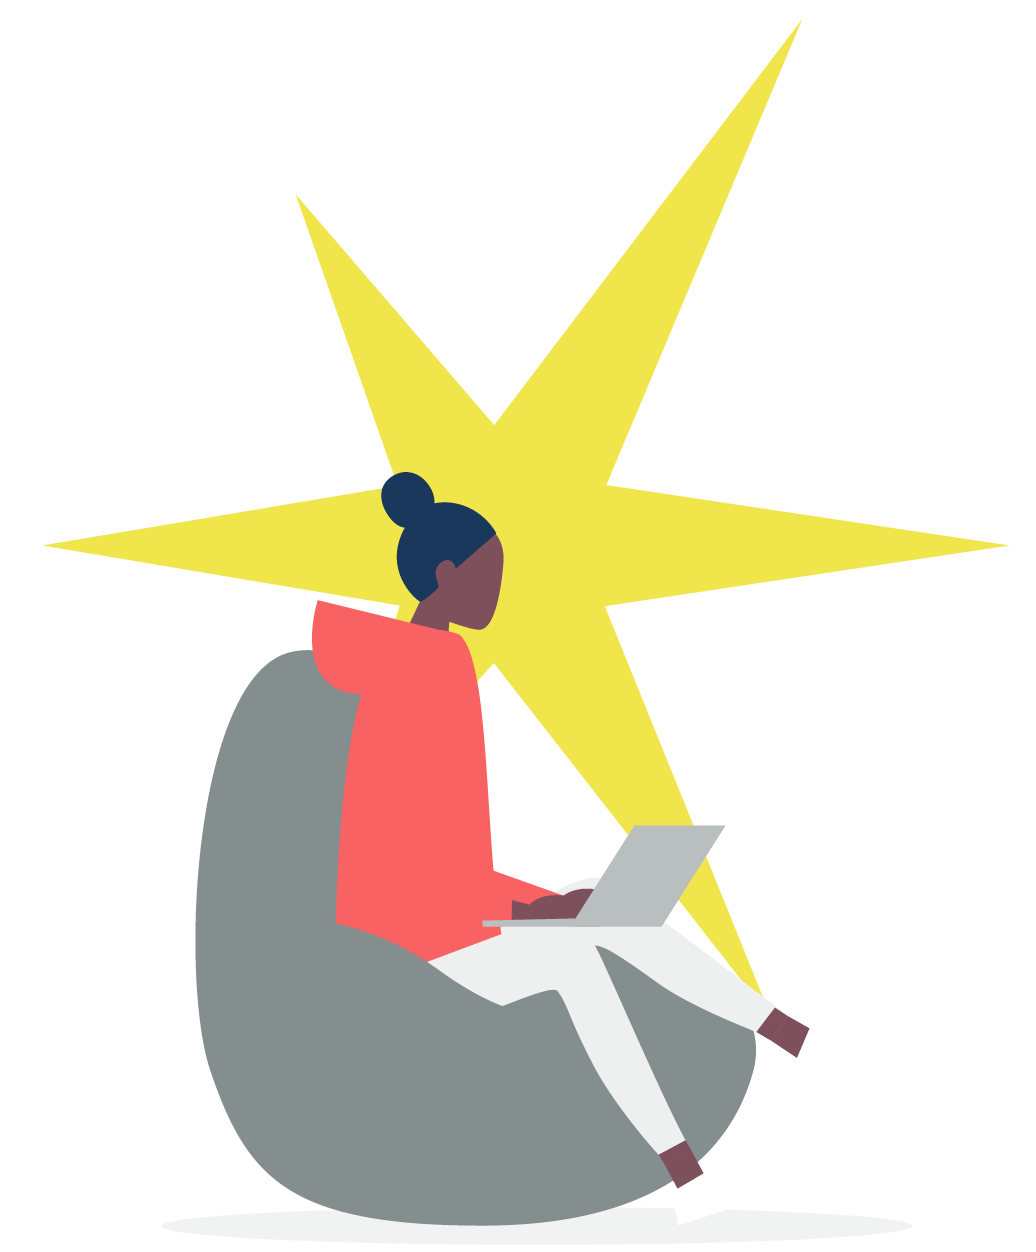 Cartoon image on a girl on a bean bag chair working on a laptop with a large yellow star behind her.